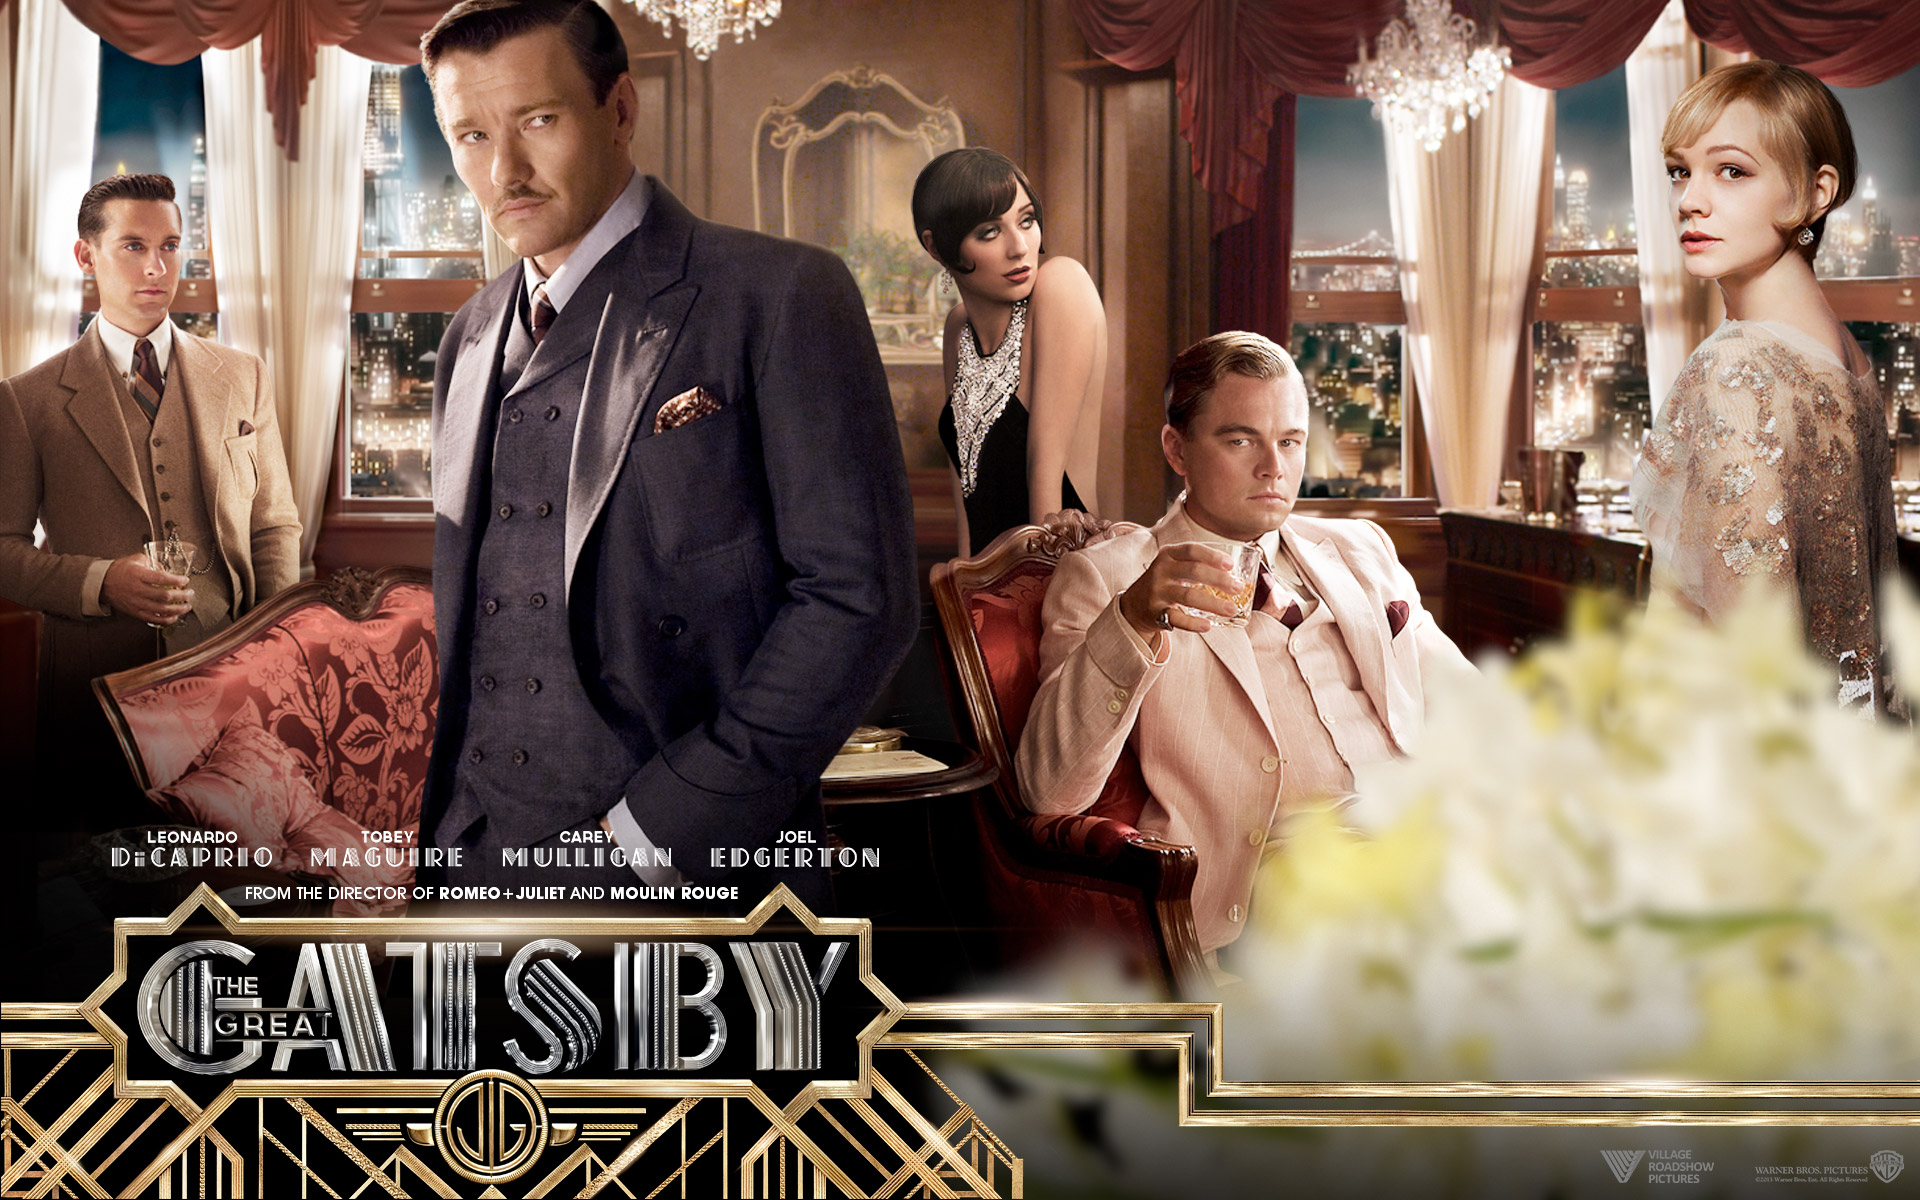 The Great Gatsby Movie Wide Photos